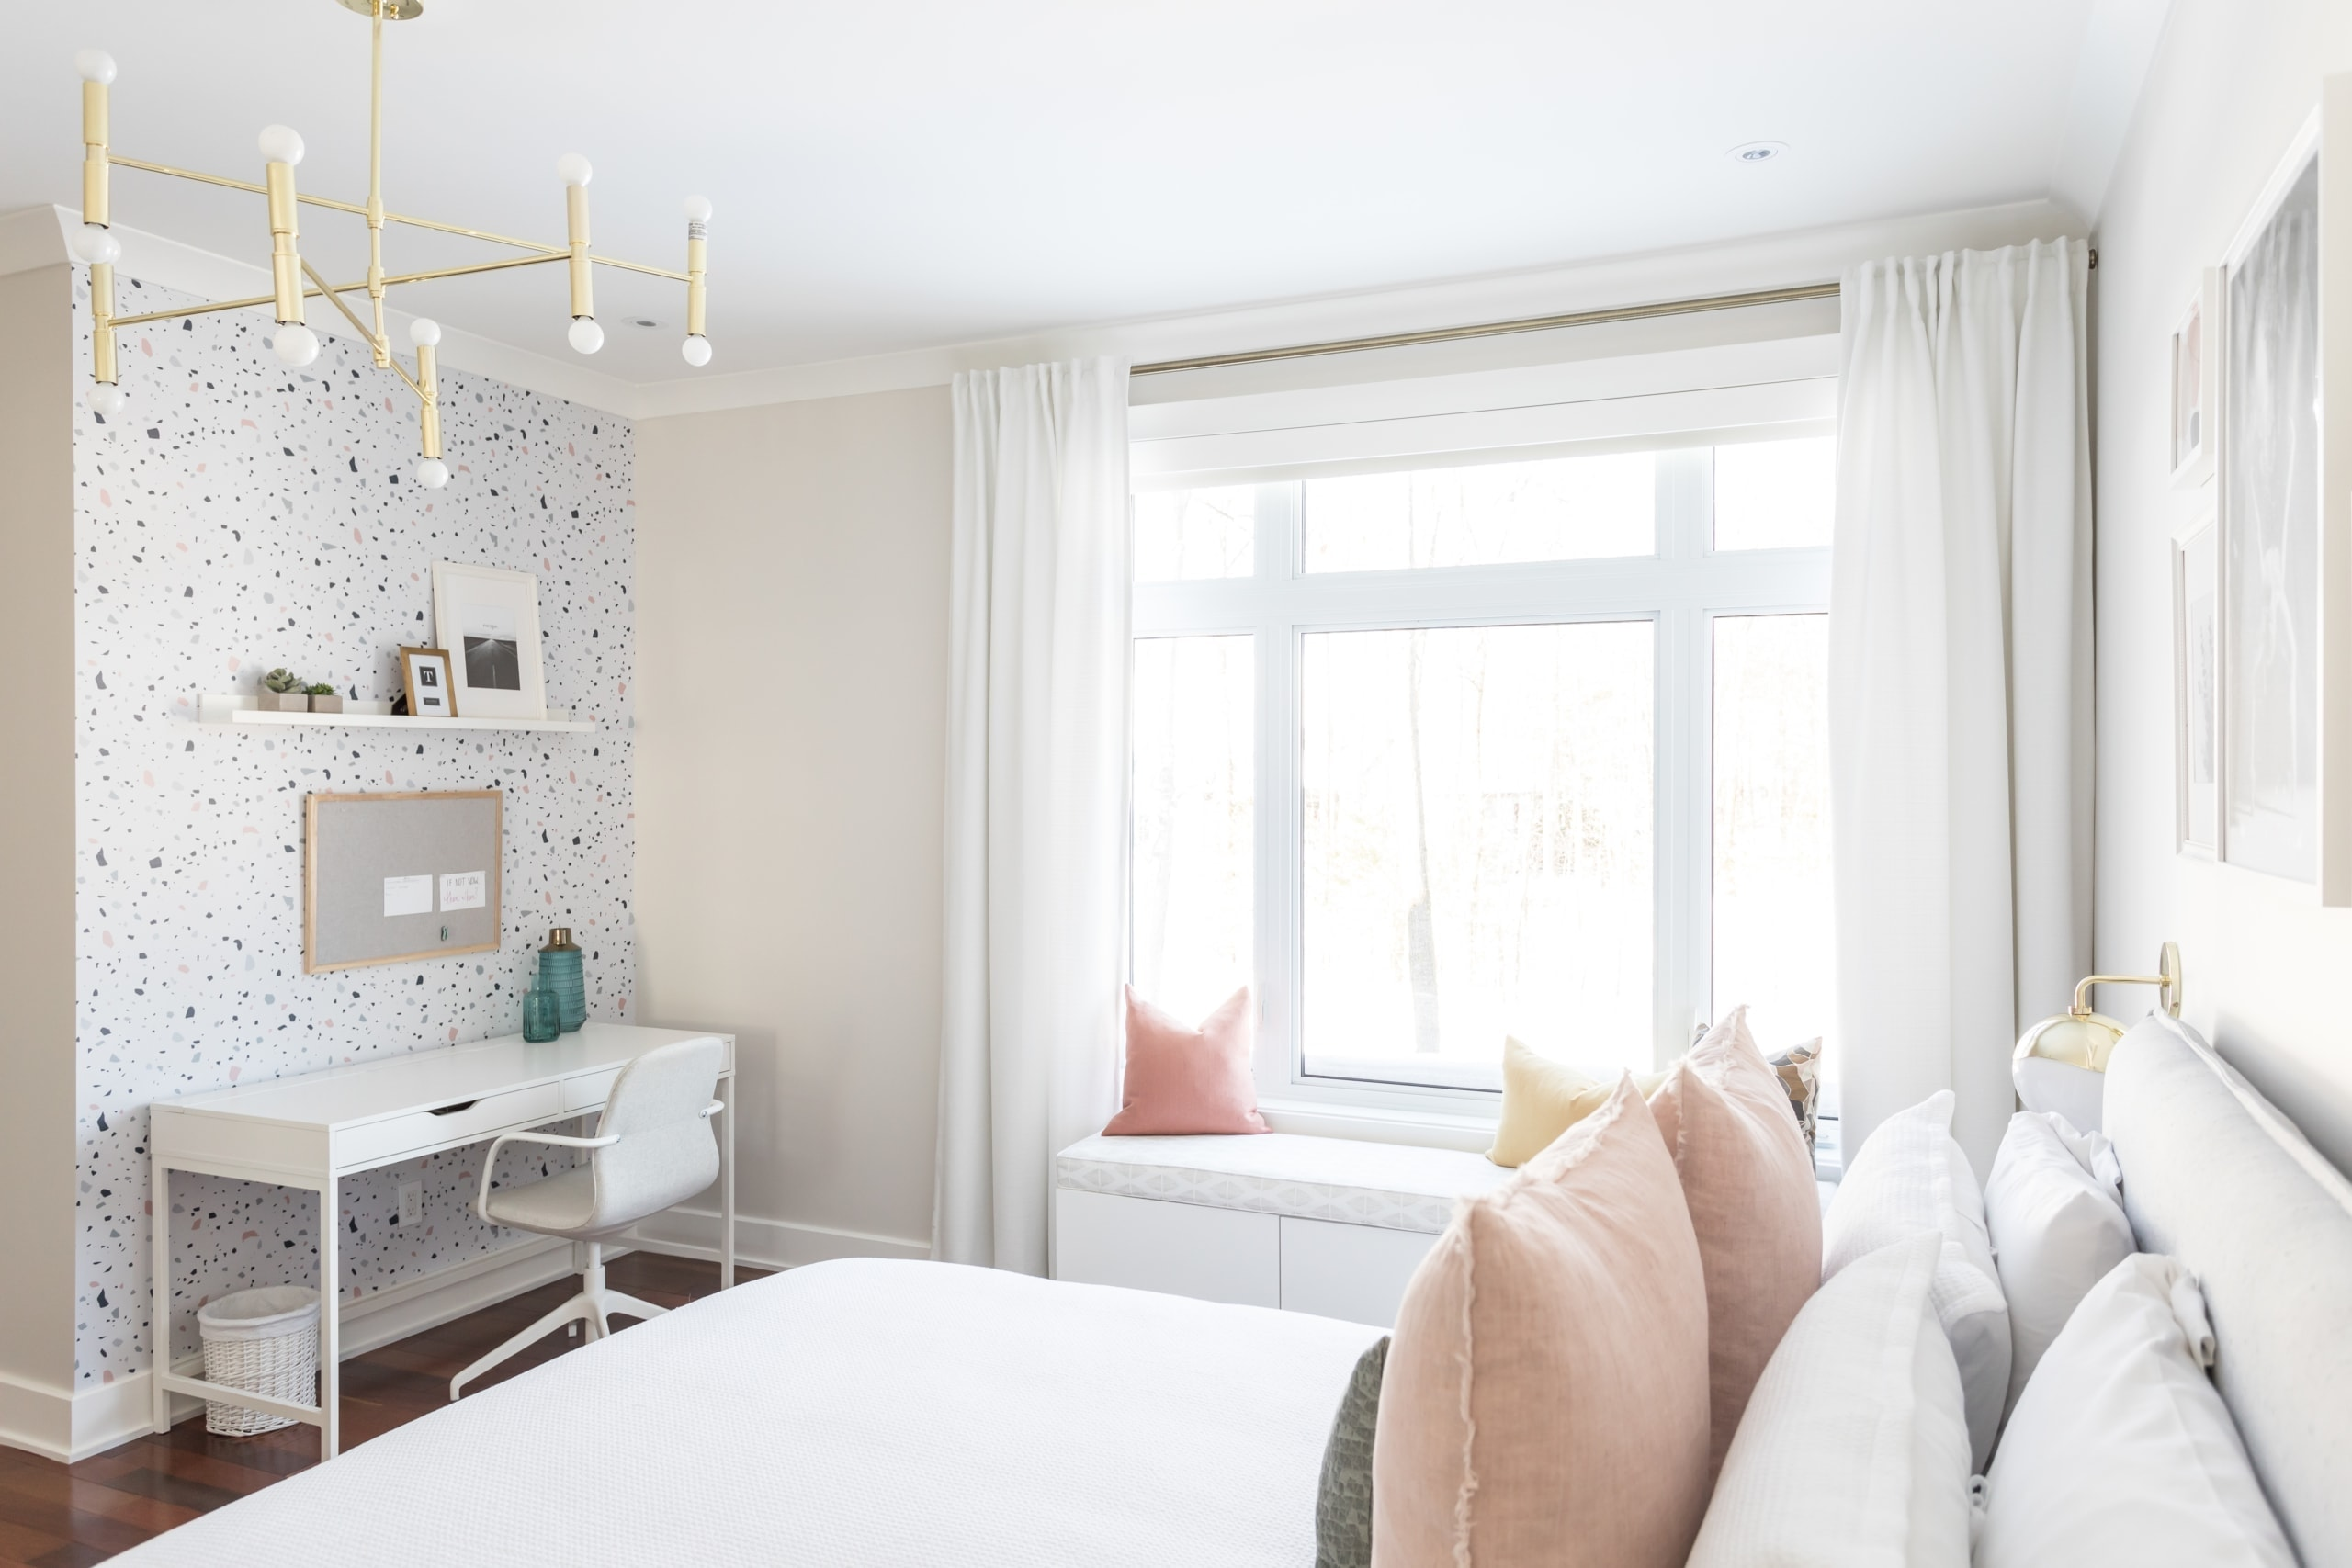 Master bedroom with a bright large window